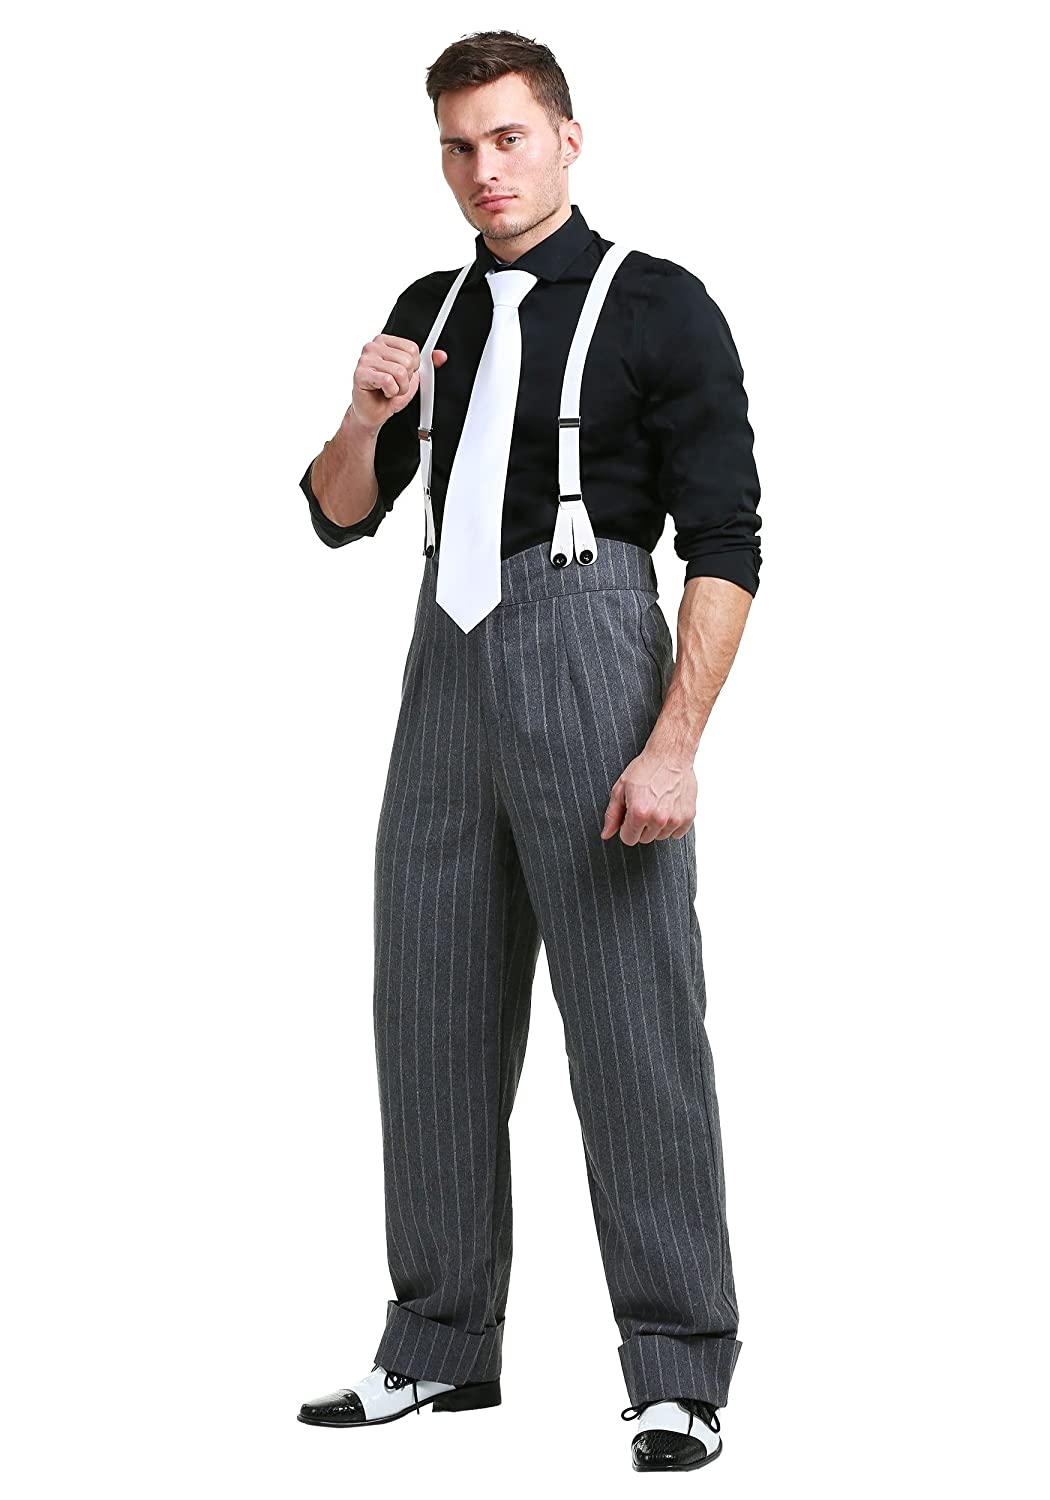 1920s Men's Costumes: Gatsby, Gangster, Peaky Blinders, Mobster, Mafia Mens Underboss Gangster Costume 1920s Gangster Costume Men $84.99 AT vintagedancer.com